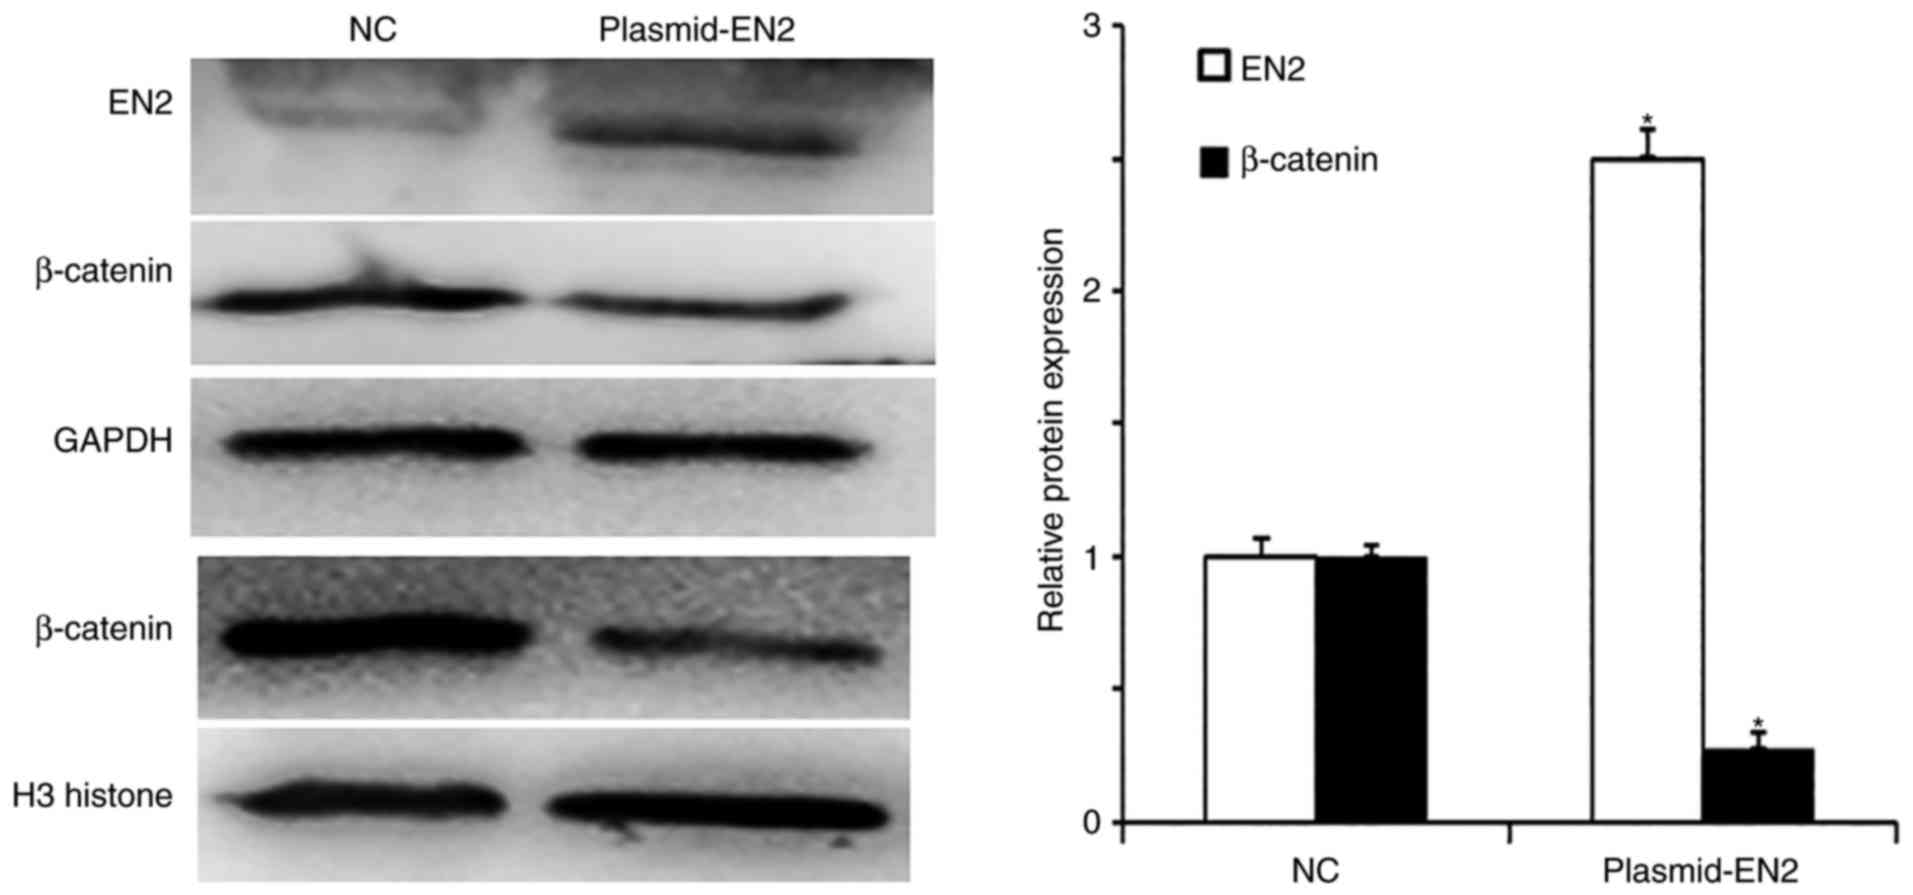 Expression of engrailed homeobox 2 regulates the